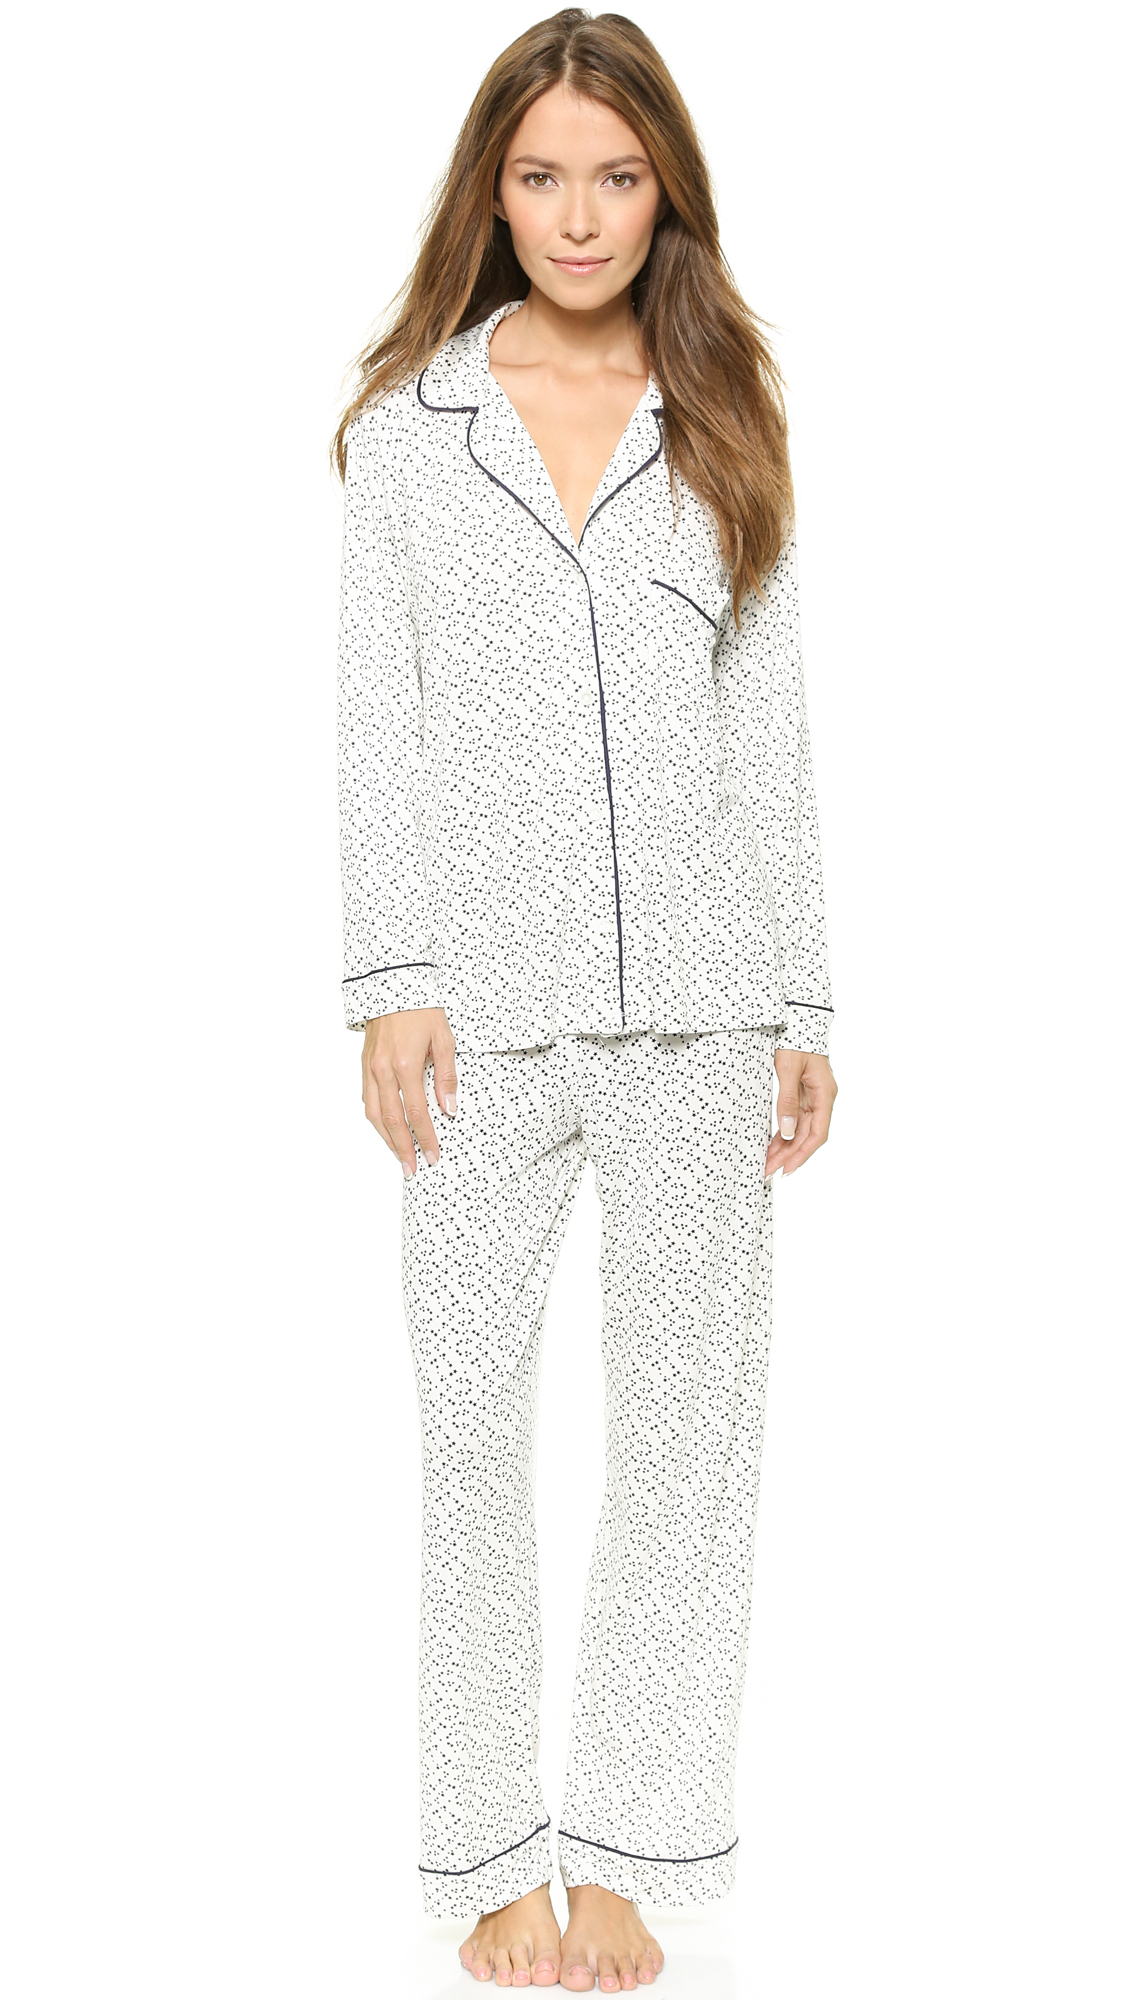 Cheap Sale 2018 New Printed Stretch-jersey Pajama Set - Navy Eberjey Discount Codes Clearance Store Low Price Cheap Online Cheap Pre Order AMJ9DdHKj